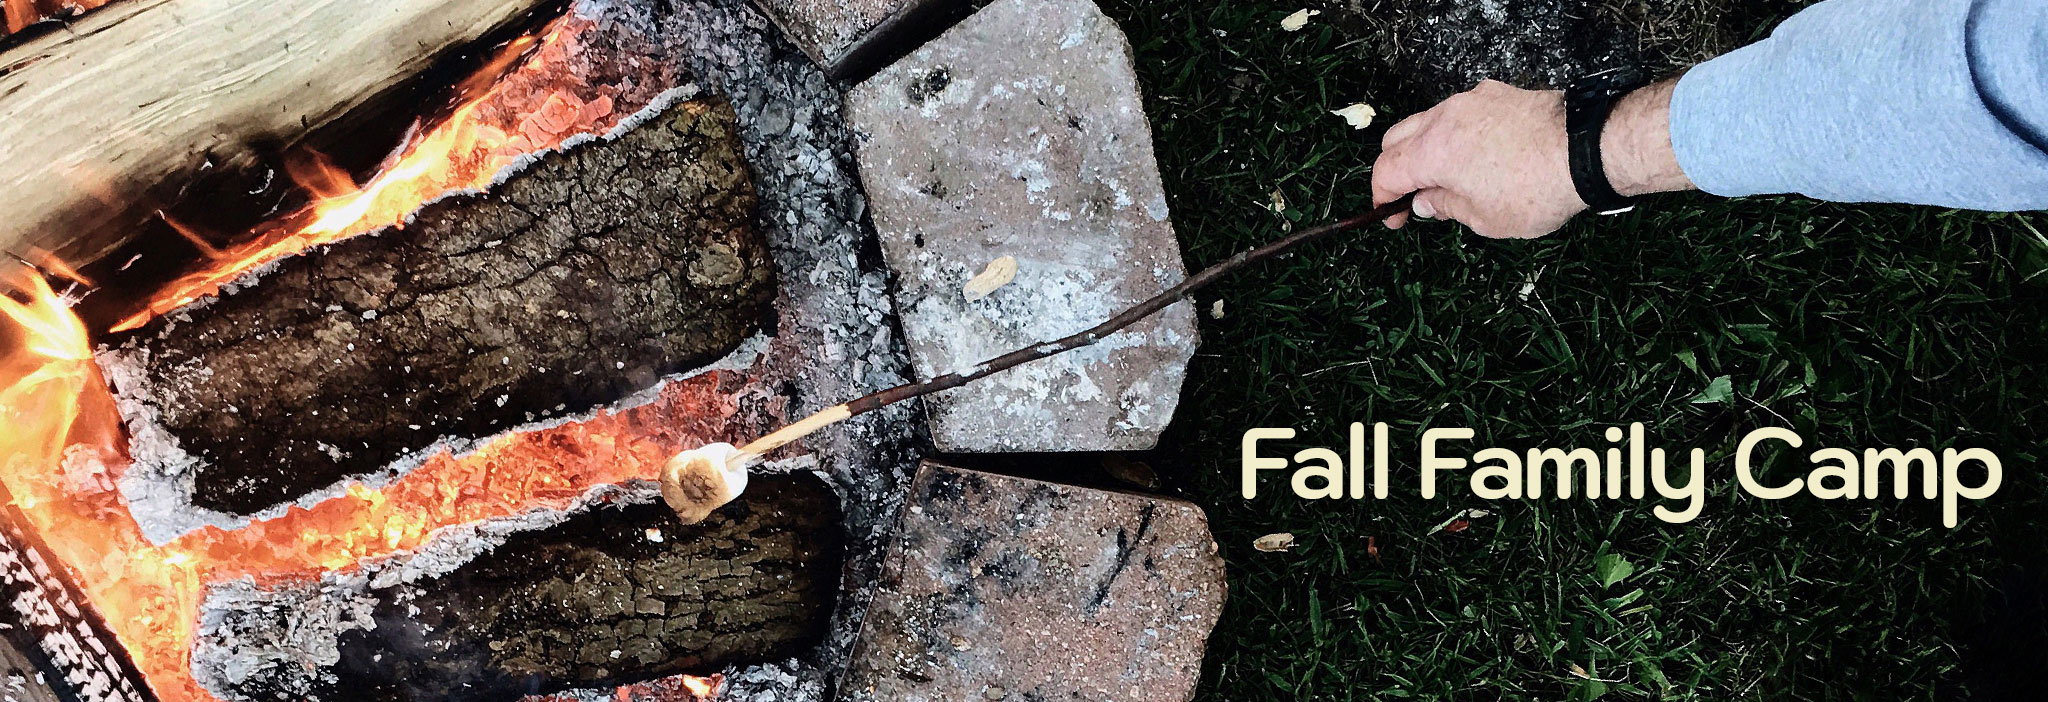 Fall Family Camp Page